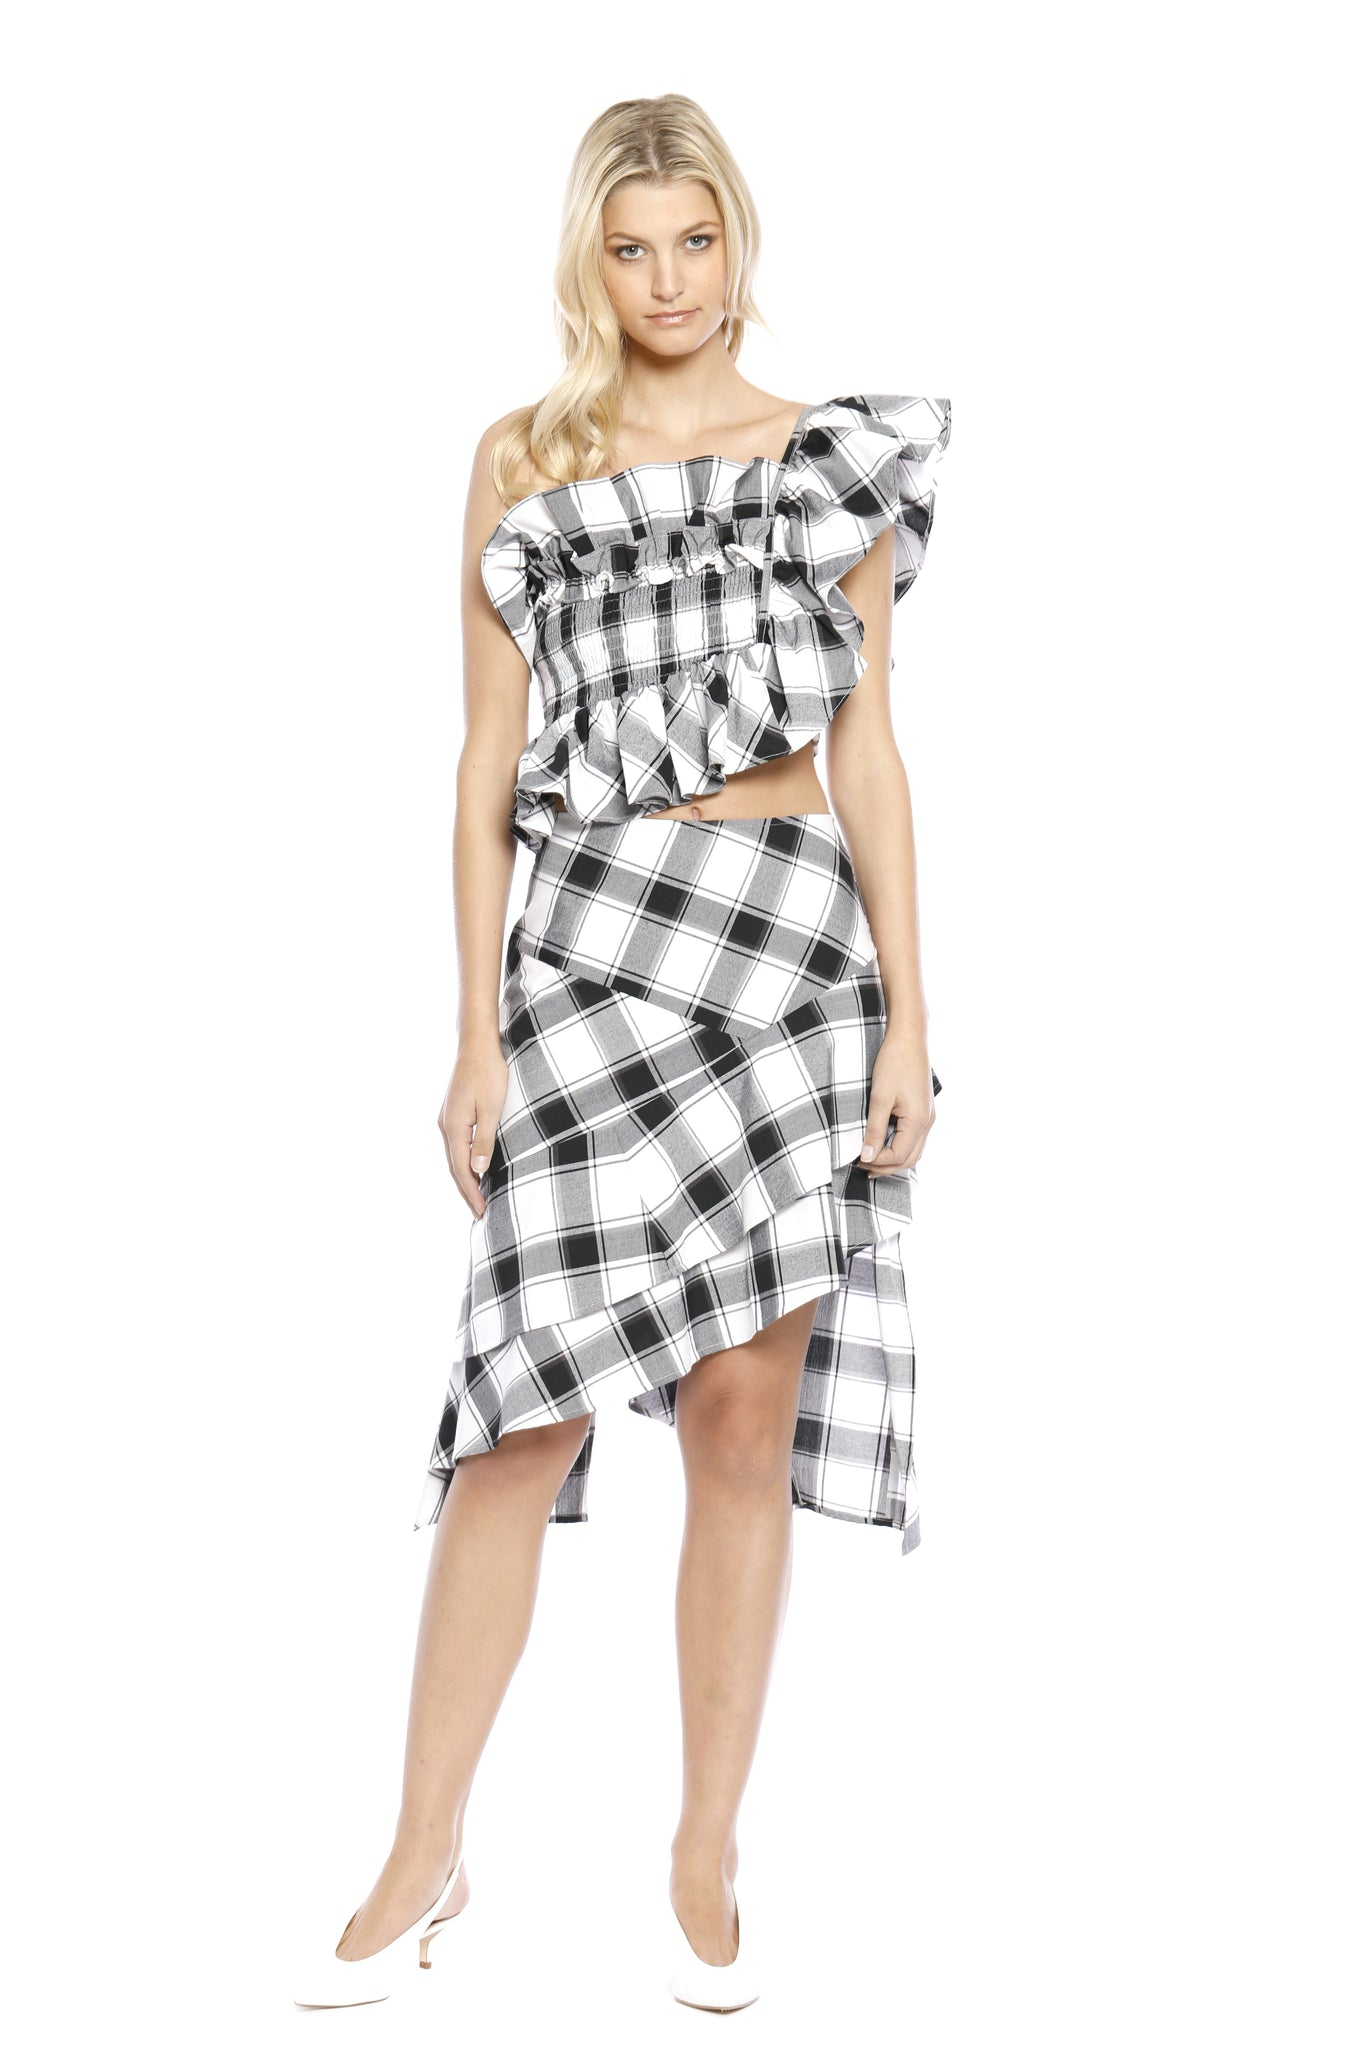 Front view of Ronda Skirt, asymmetrically layered black/white plaid skirt that is complementary to Margaret Top. 100% cotton and machine-washable.